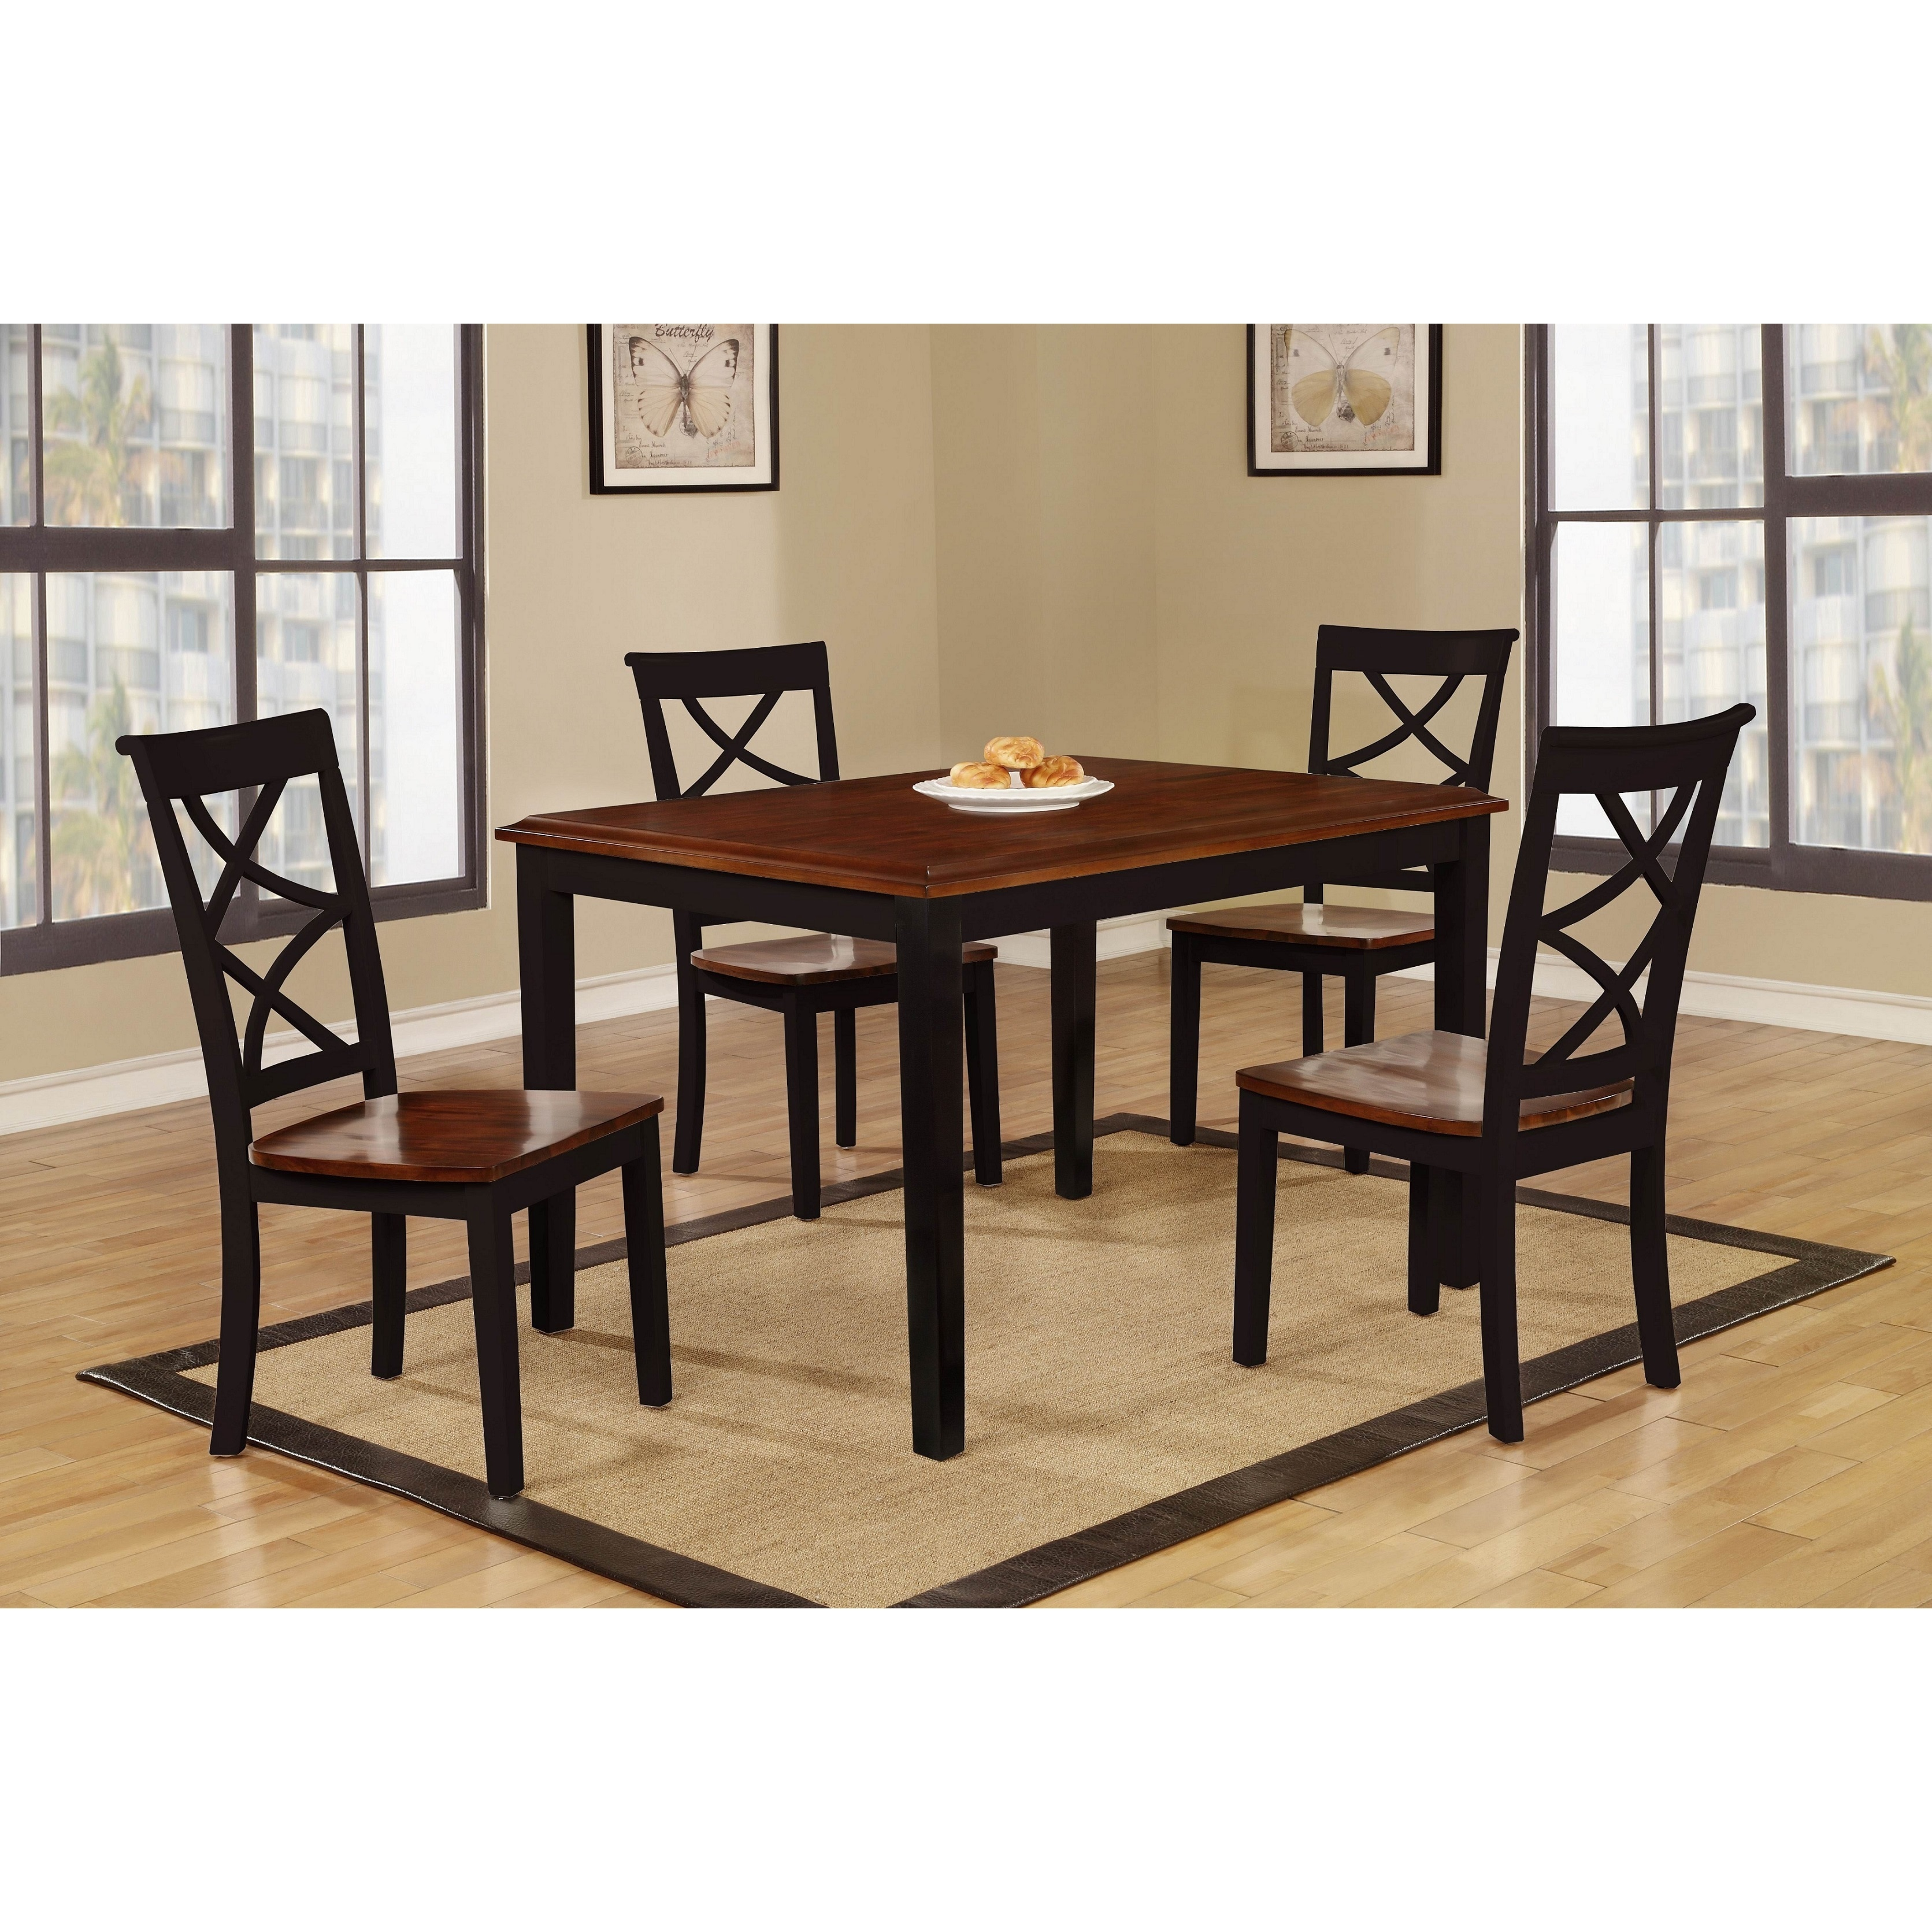 Shop Baum 5 piece Two tone Wood Dining Set